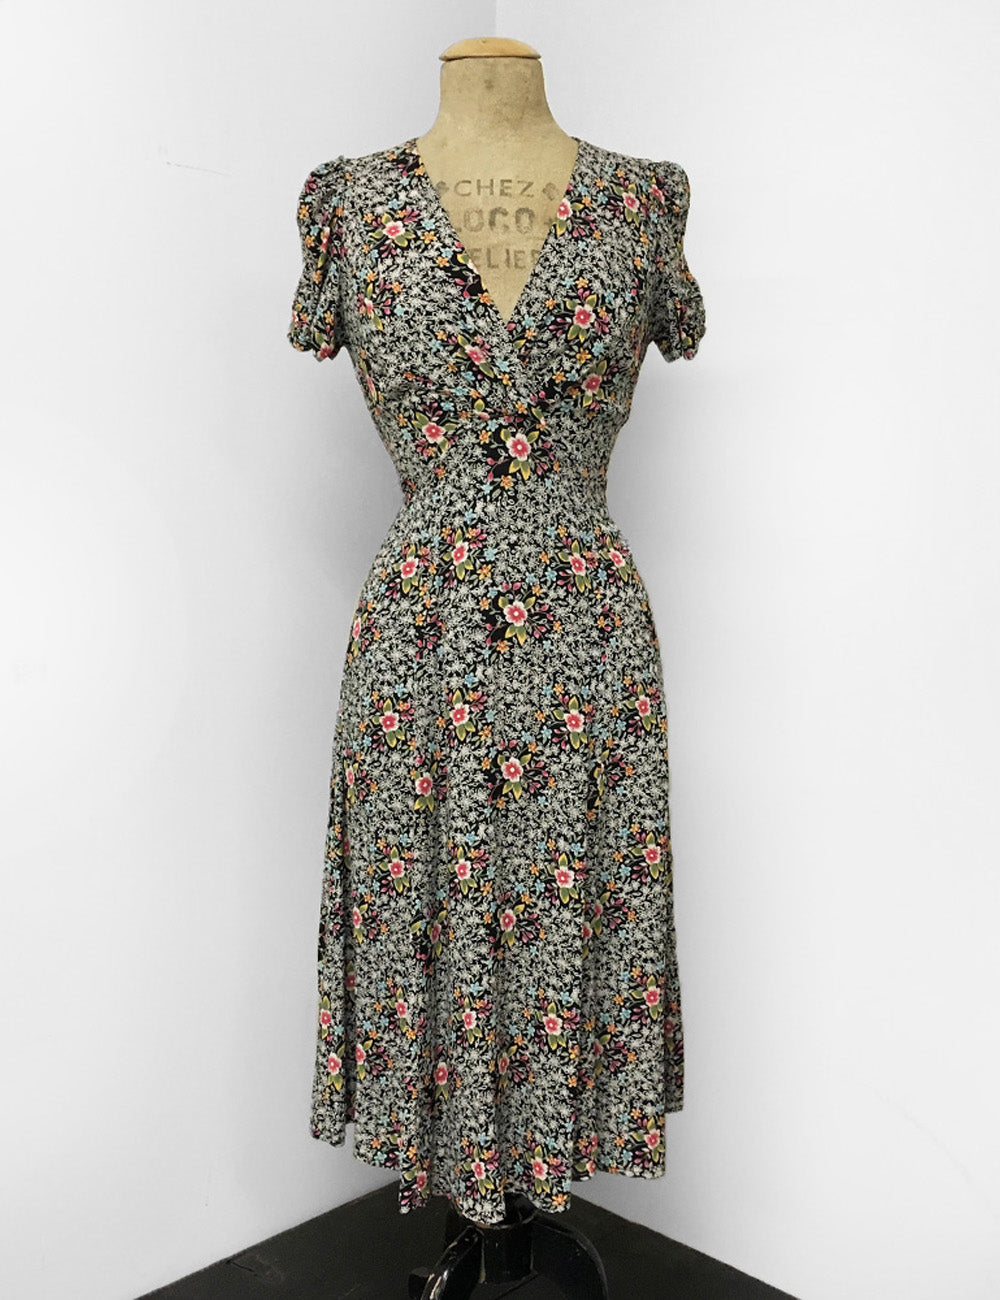 Colorful Sweet Ragtime Floral Print Retro Rita Dress - FINAL SALE